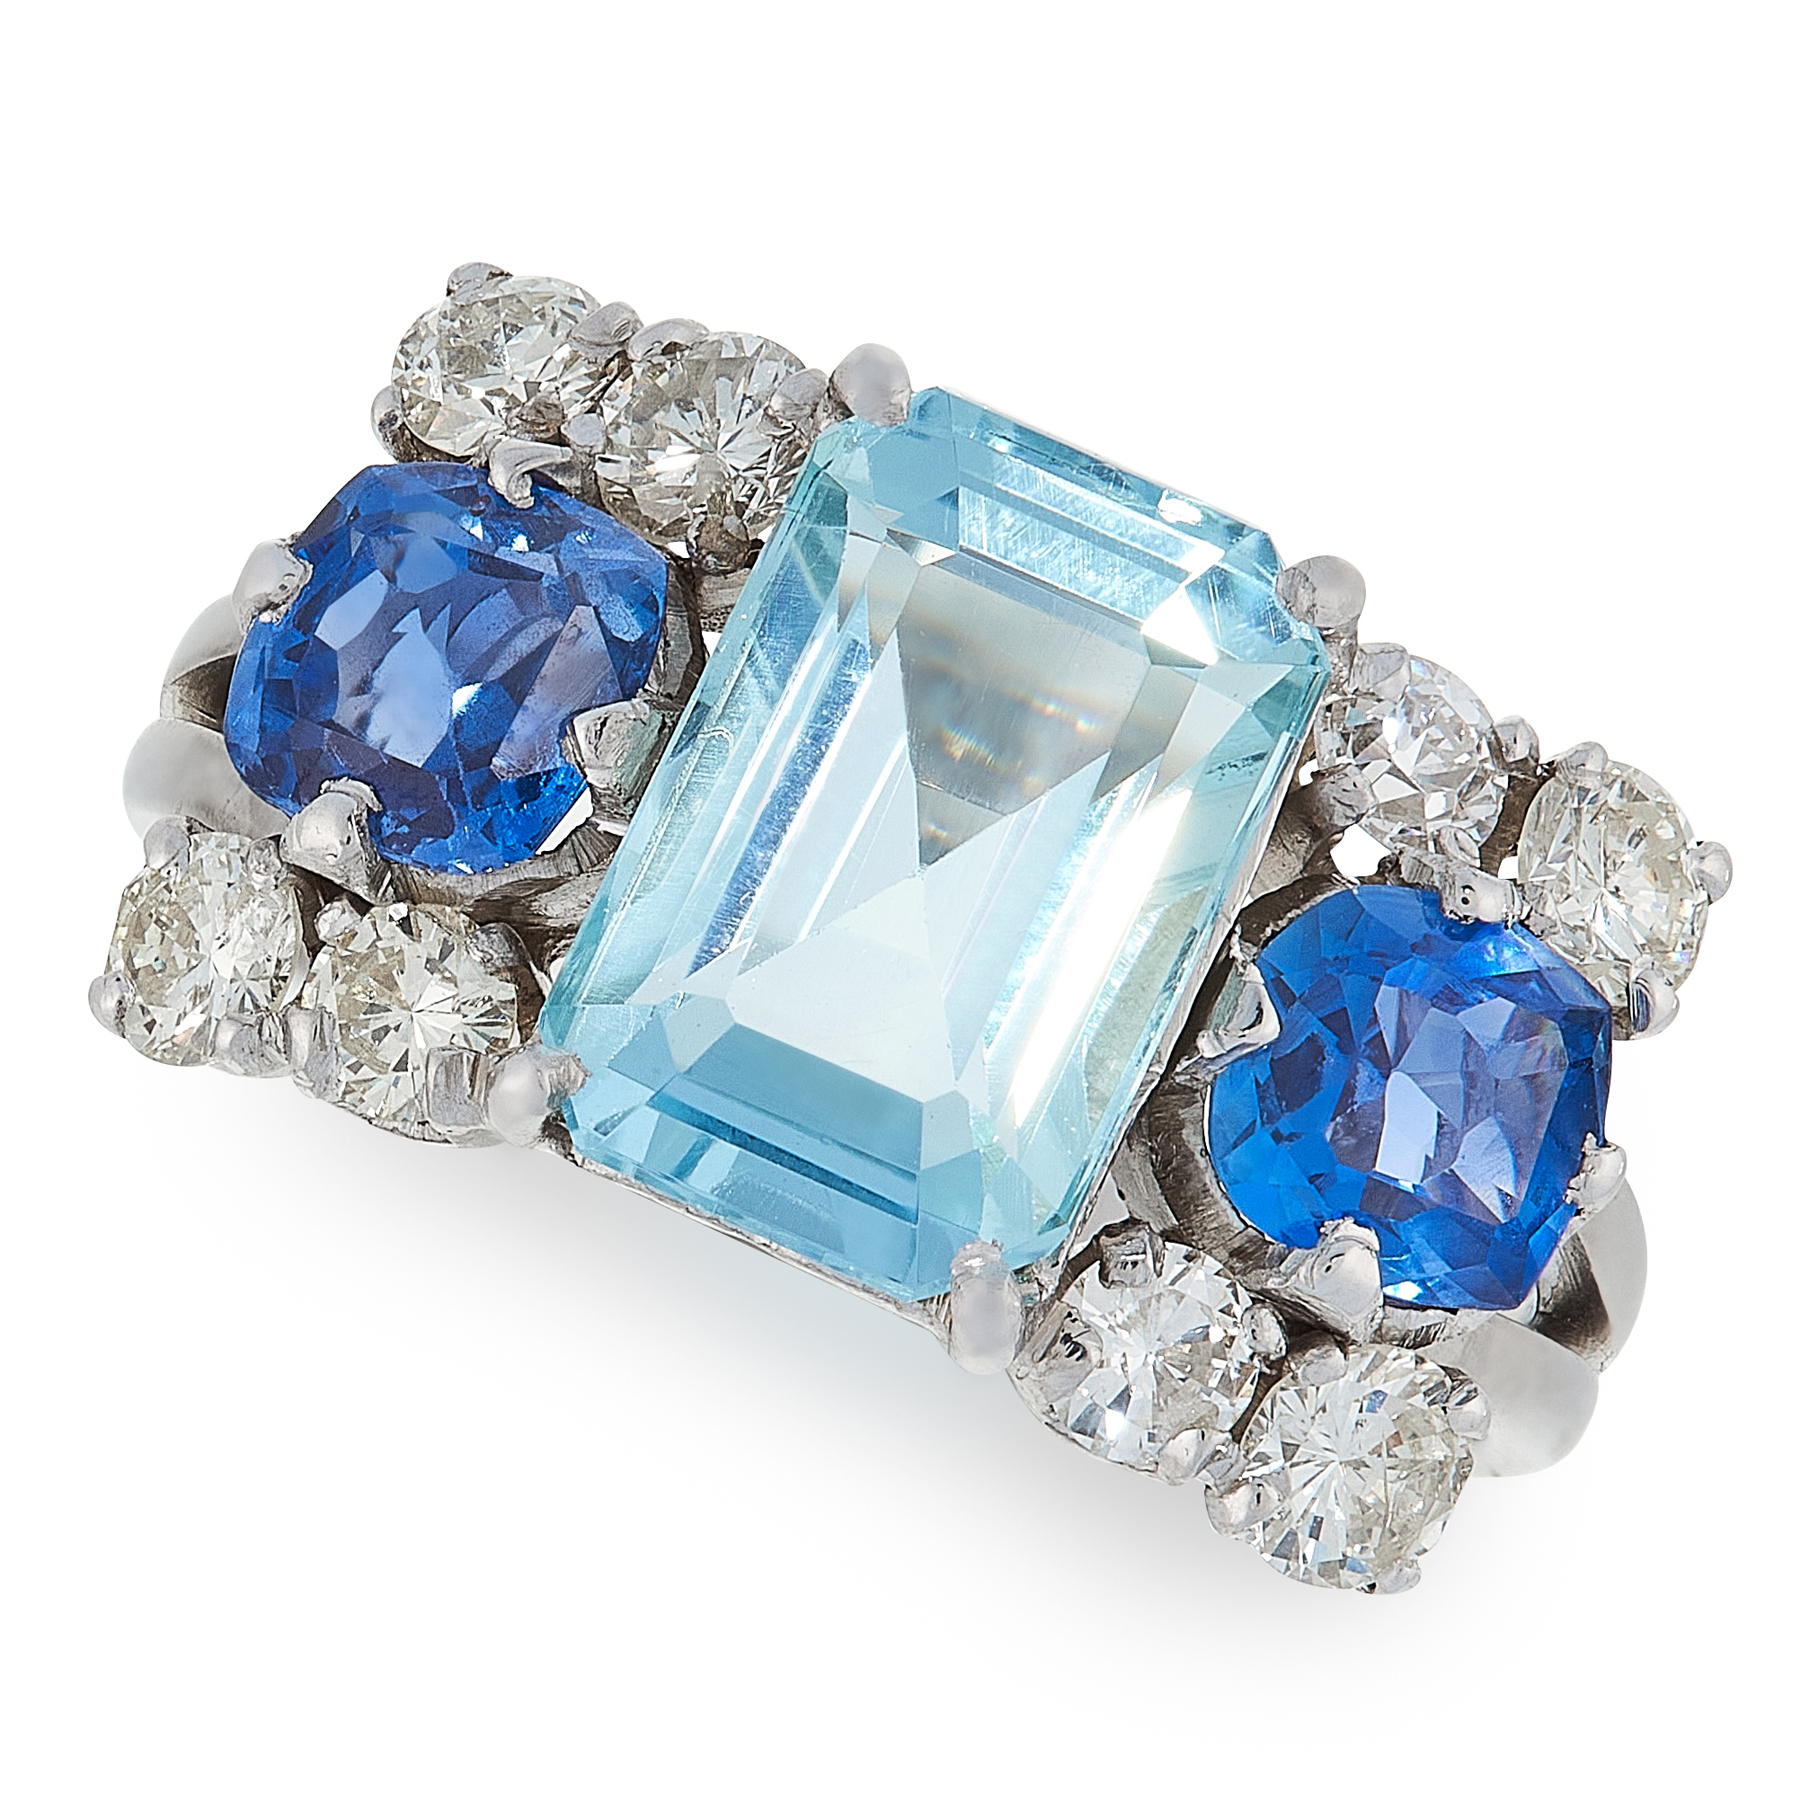 AN AQUAMARINE, SAPPHIRE AND DIAMOND RING set with an emerald cut aquamarine of 2.80 carats,